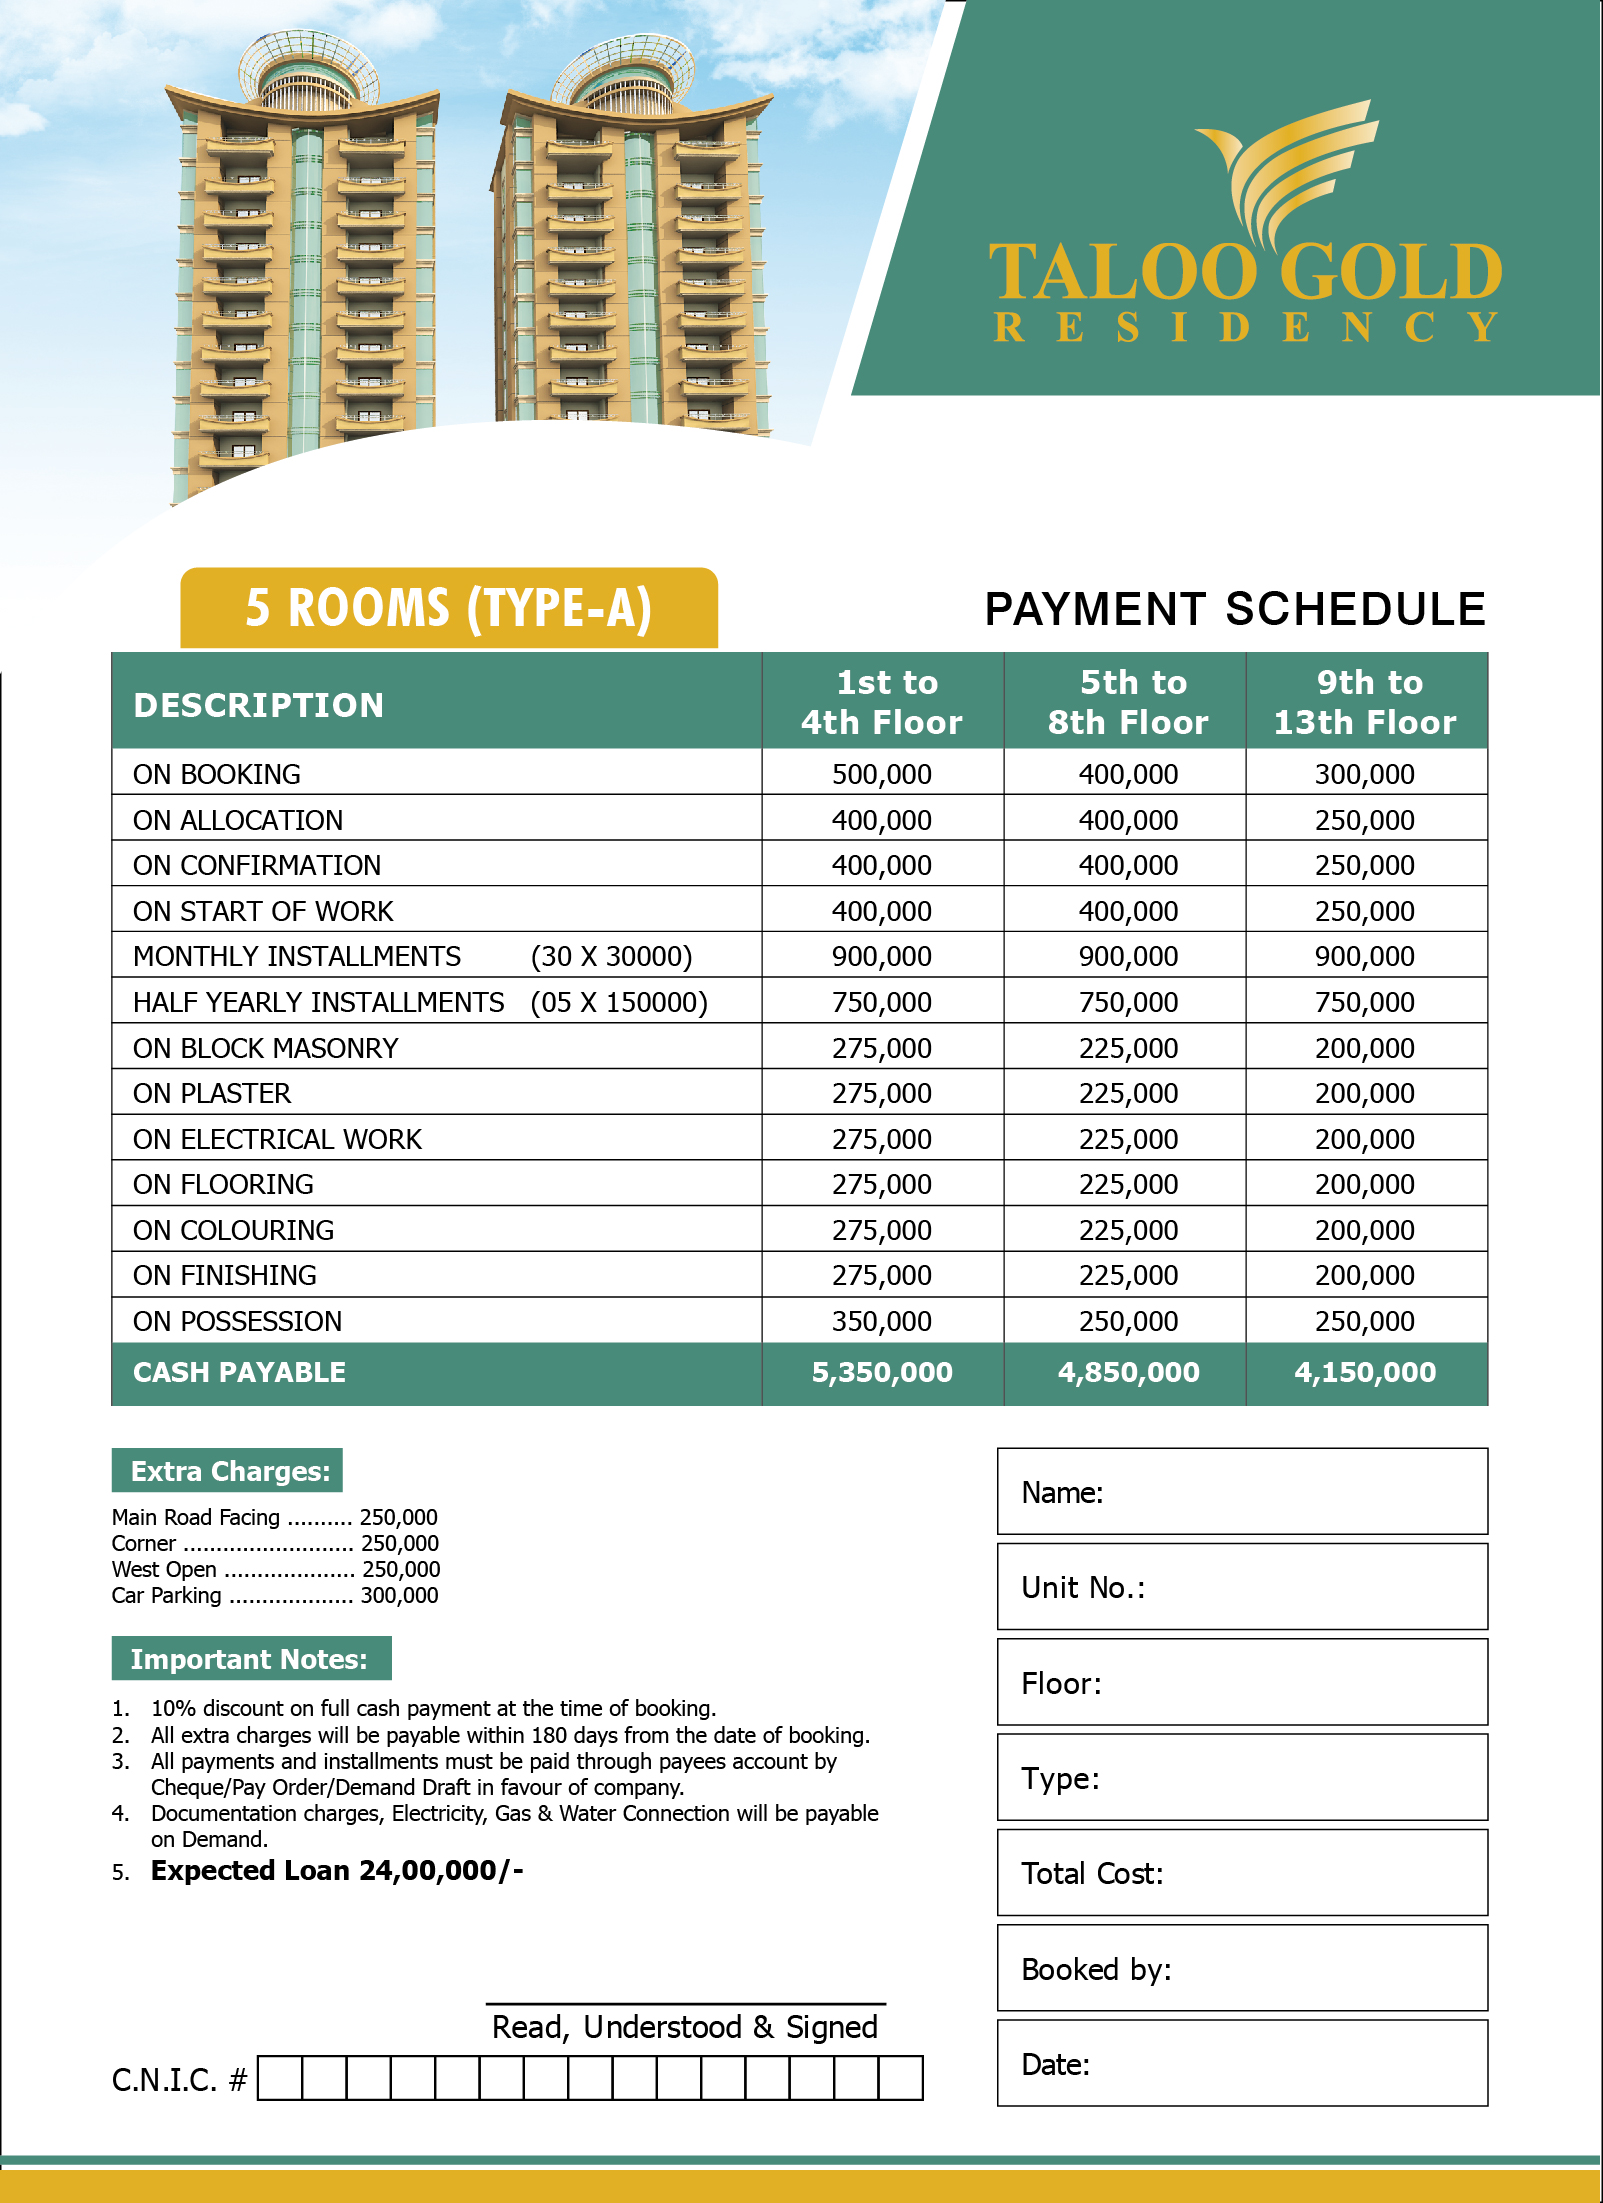 Taloo-Gold-Residency-Pay-Sch-5-ROOMS-Type-A-30-3-2017-01